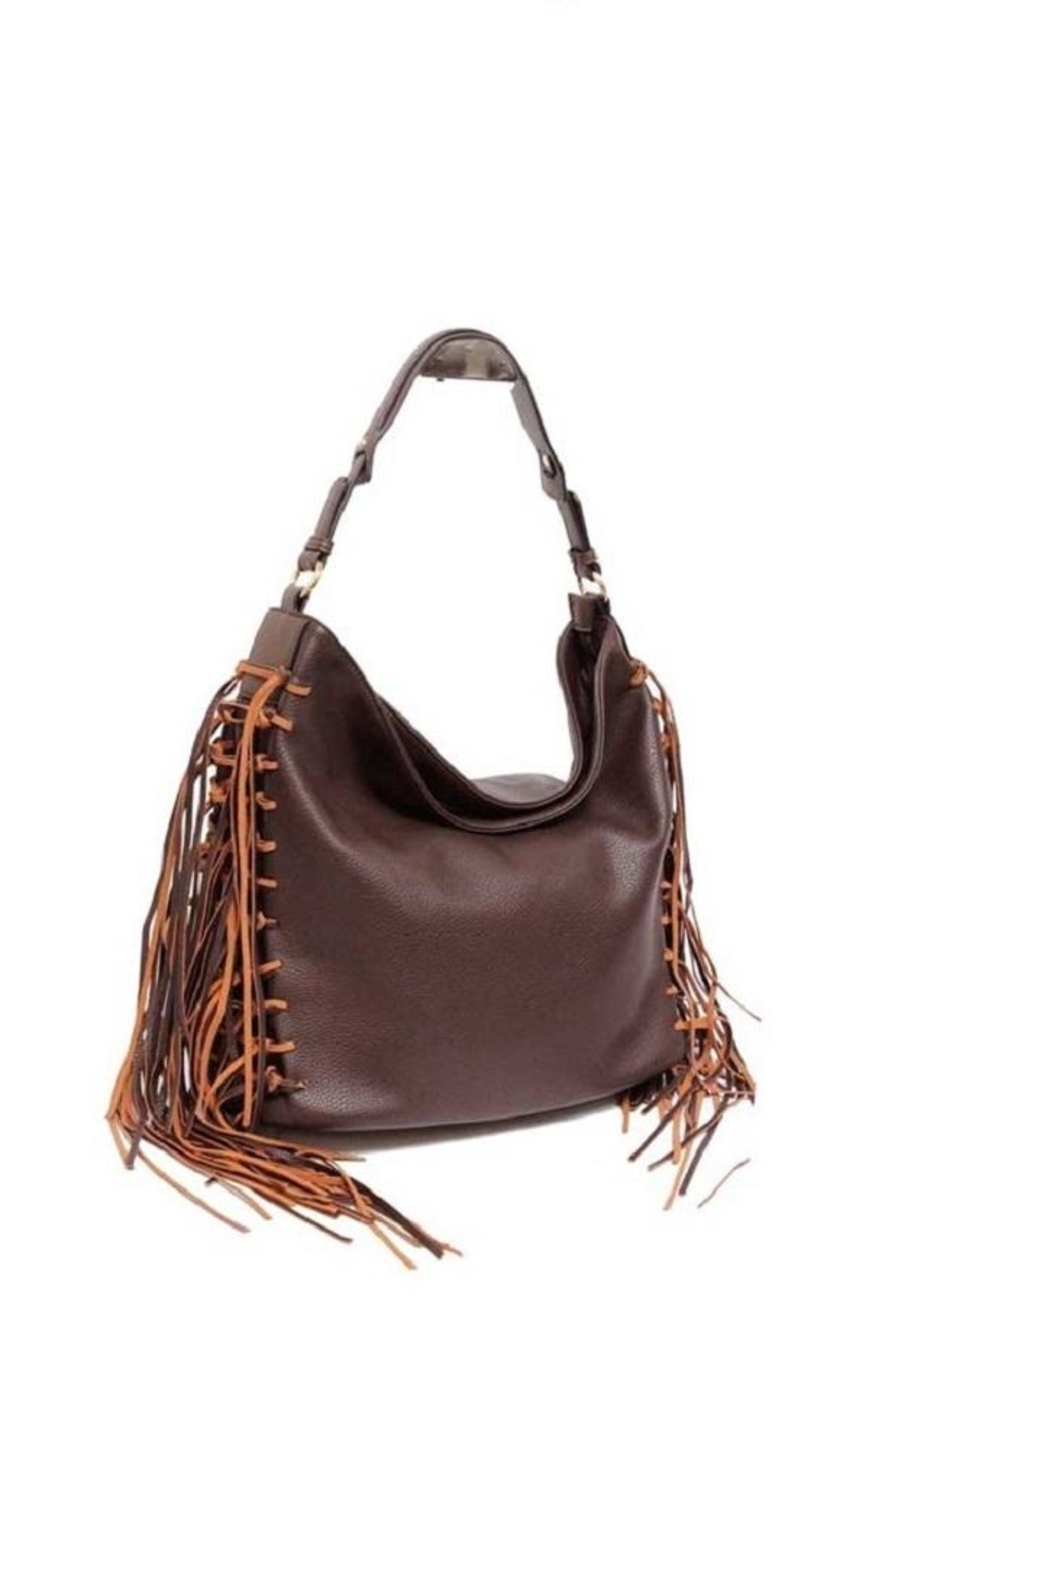 a186c789ce6c MC Handbags Leather Fringe Hobo from Saratoga by Laura M — Shoptiques